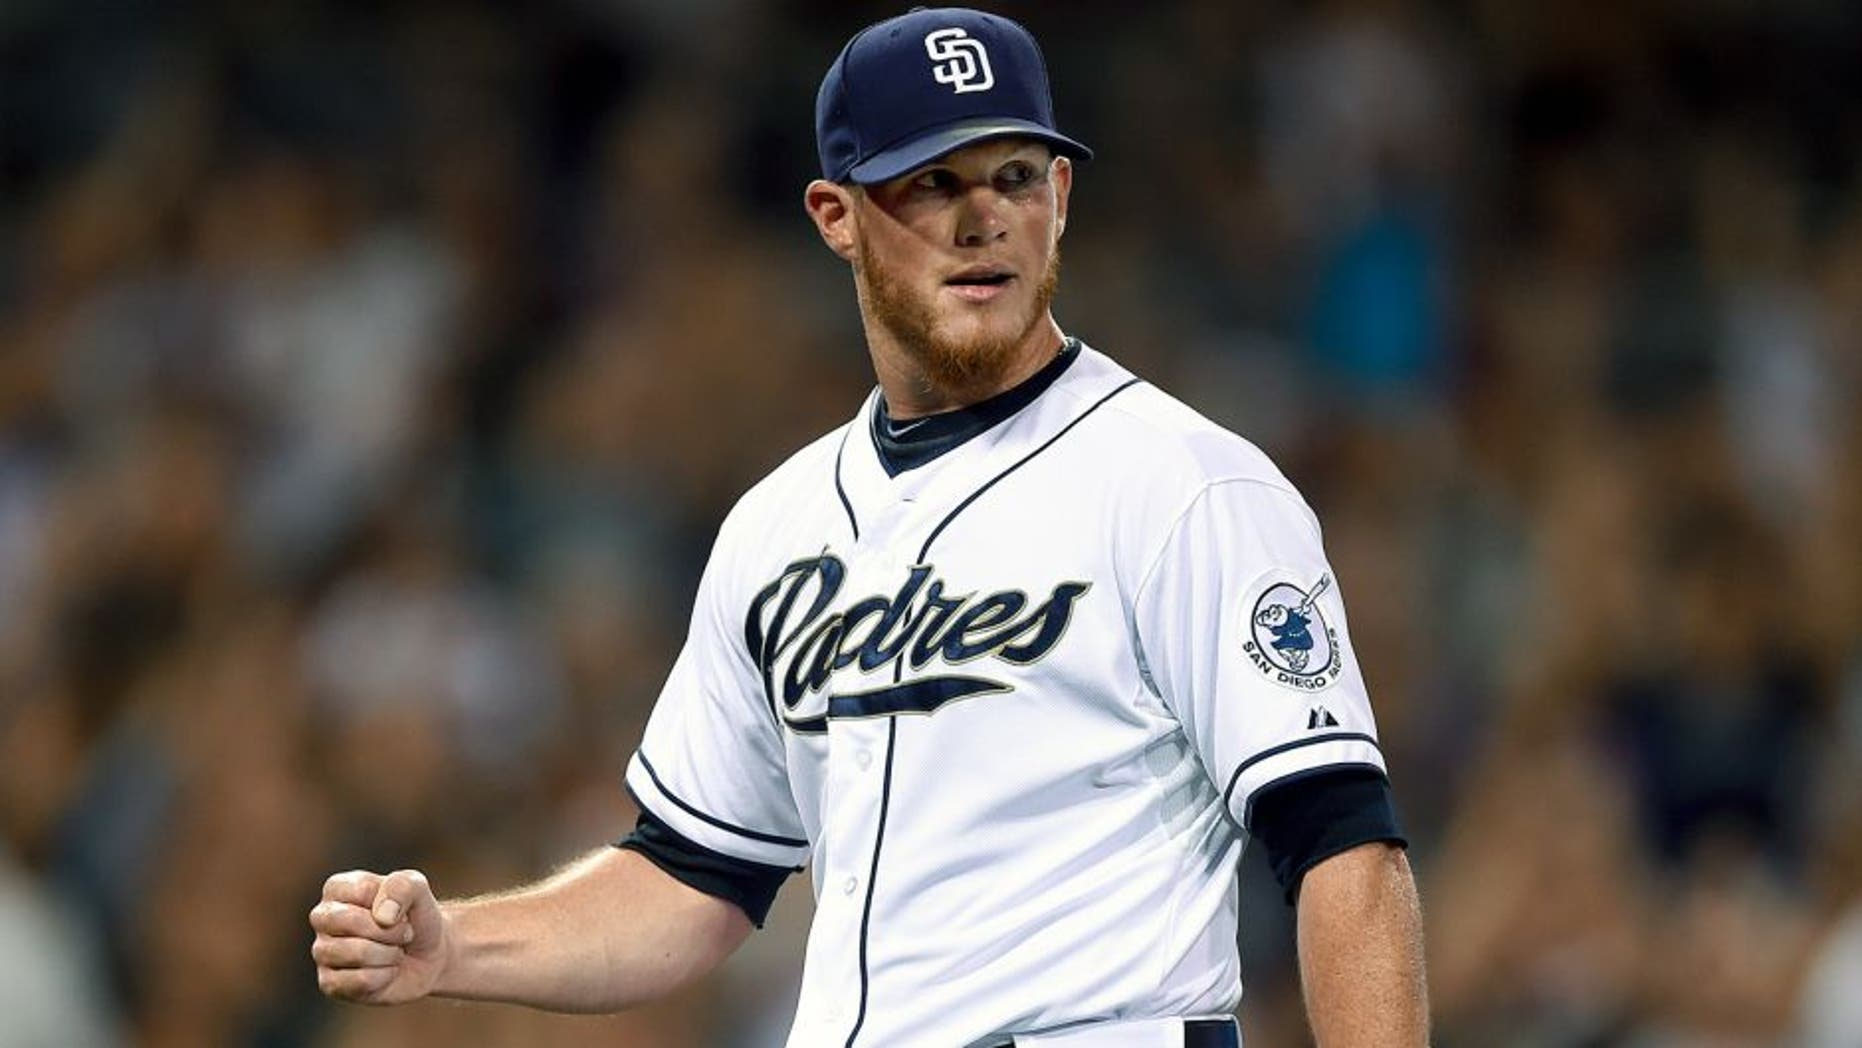 SAN DIEGO, CA - JULY 24: Craig Kimbrel #46 of the San Diego Padres celebrates after the final out during the game against the Miami Marlins at Petco Park on July 24, 2015 in San Diego, California. (Photo by Andy Hayt/San Diego Padres/Getty Images)